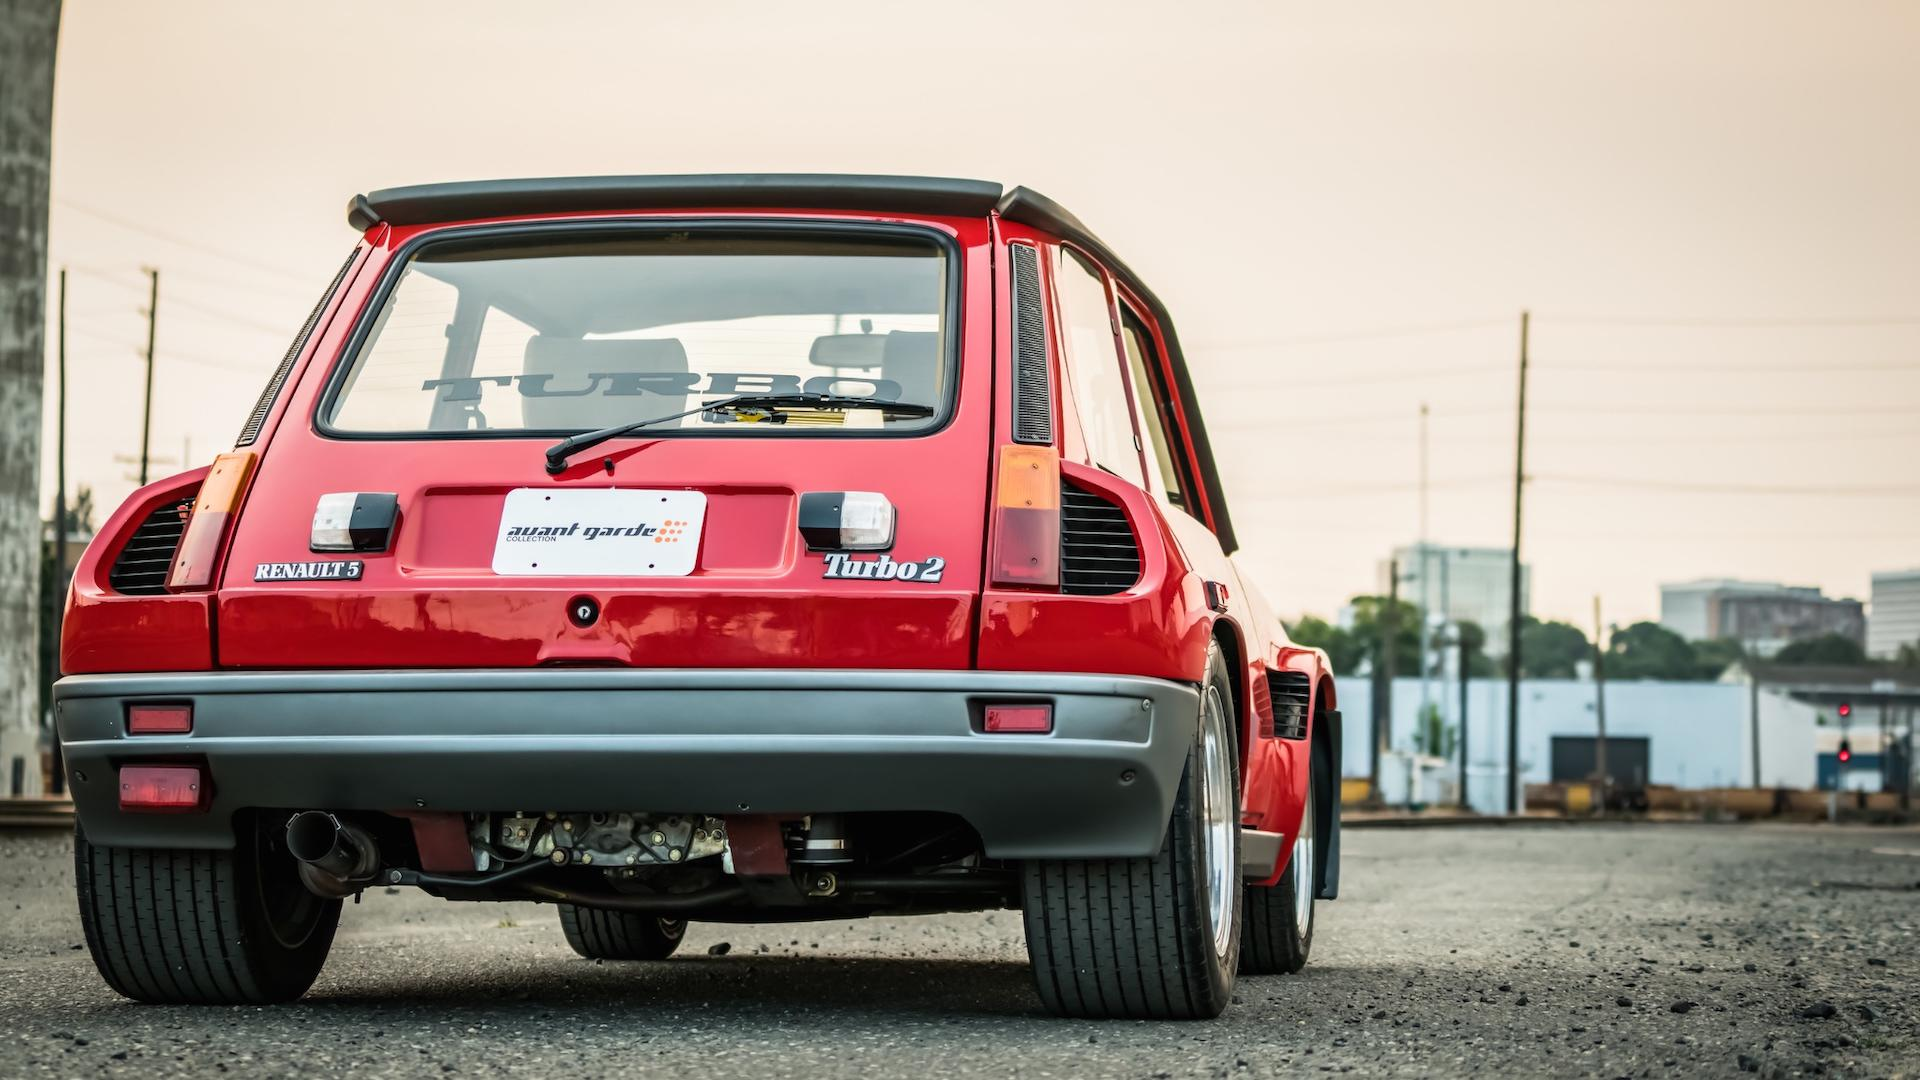 Renault_5_Turbo_2_Evo_16